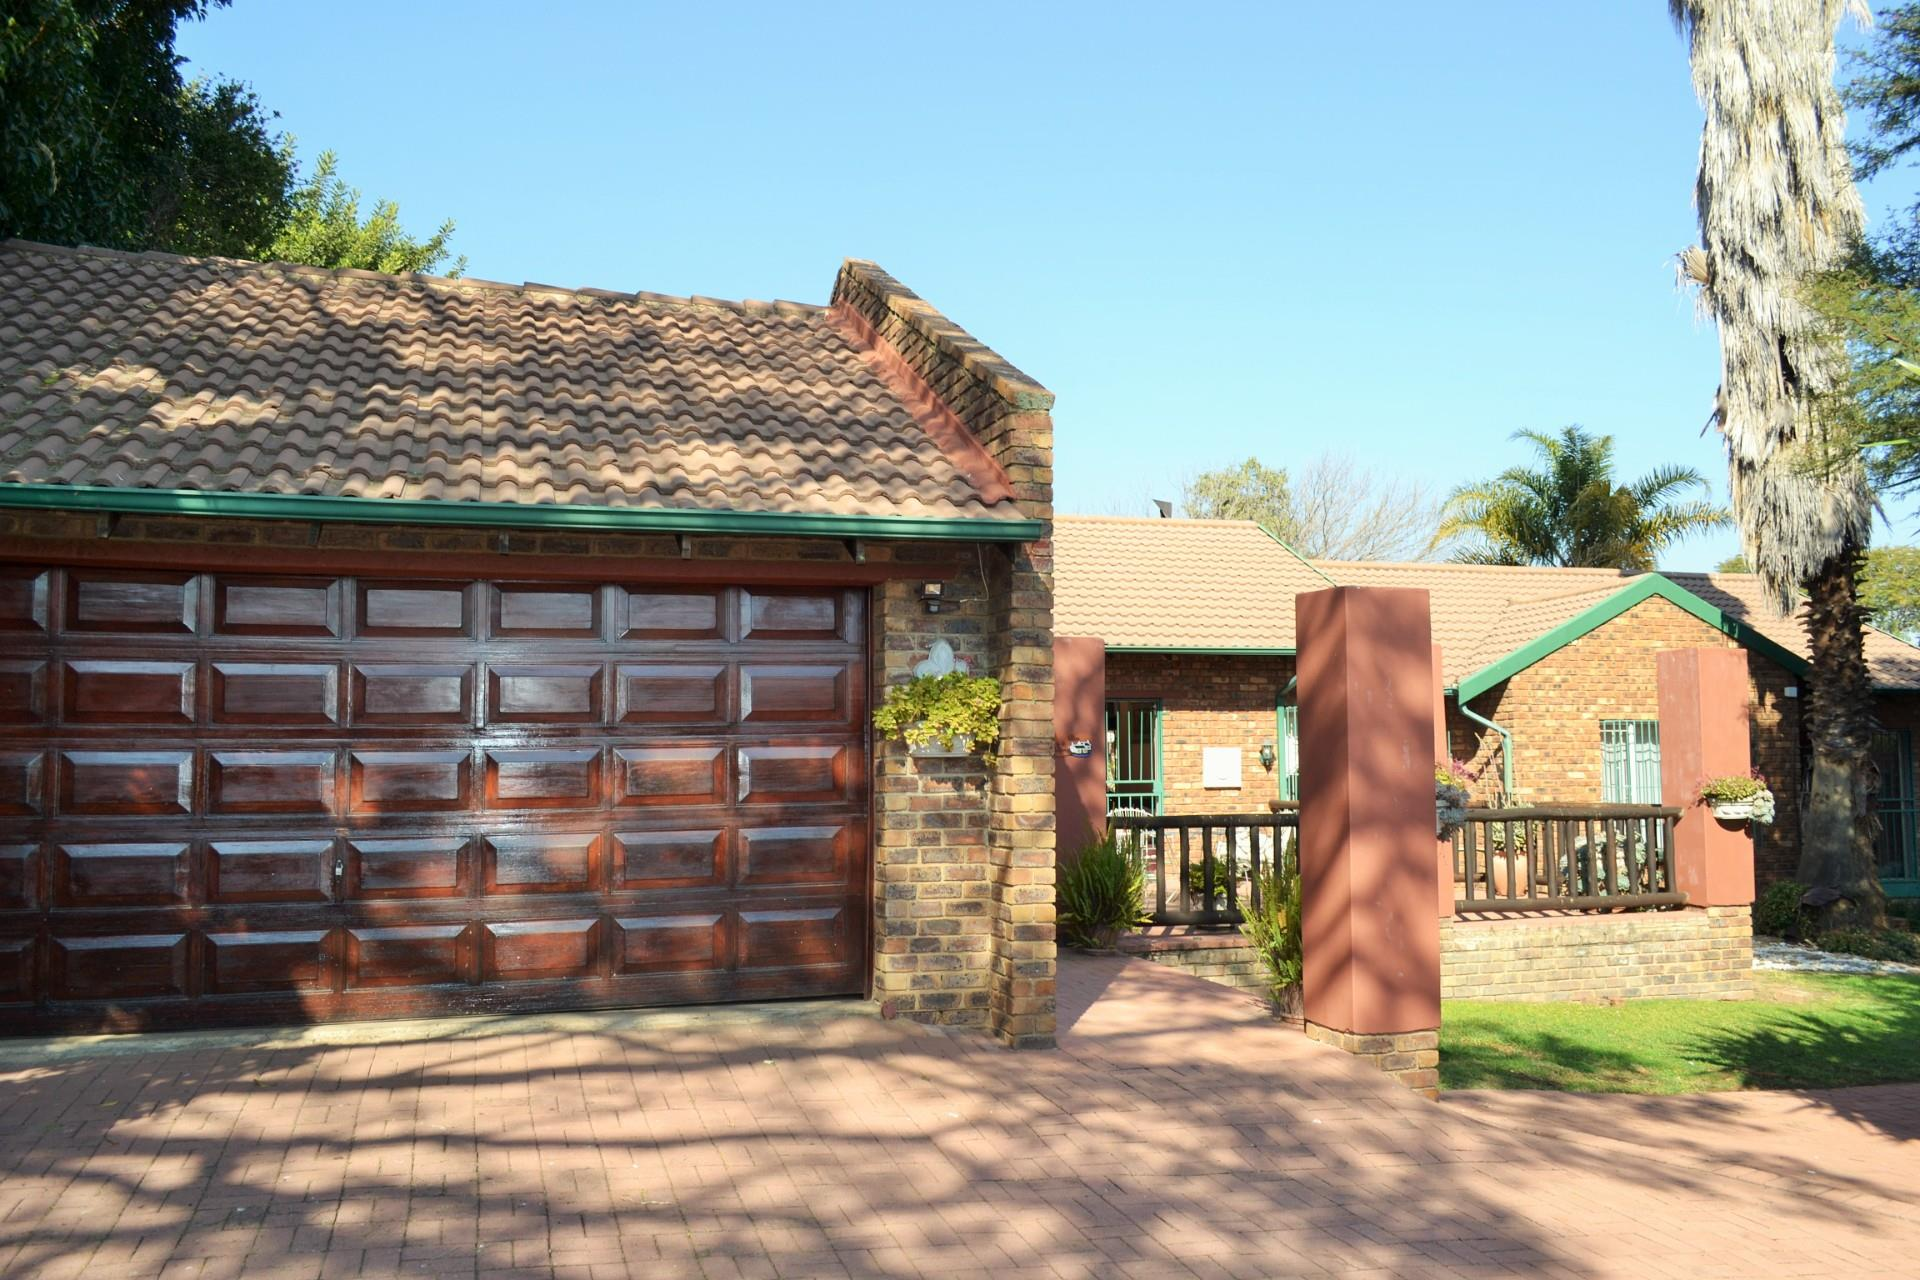 4 Bedroom House For Sale in Rooihuiskraal